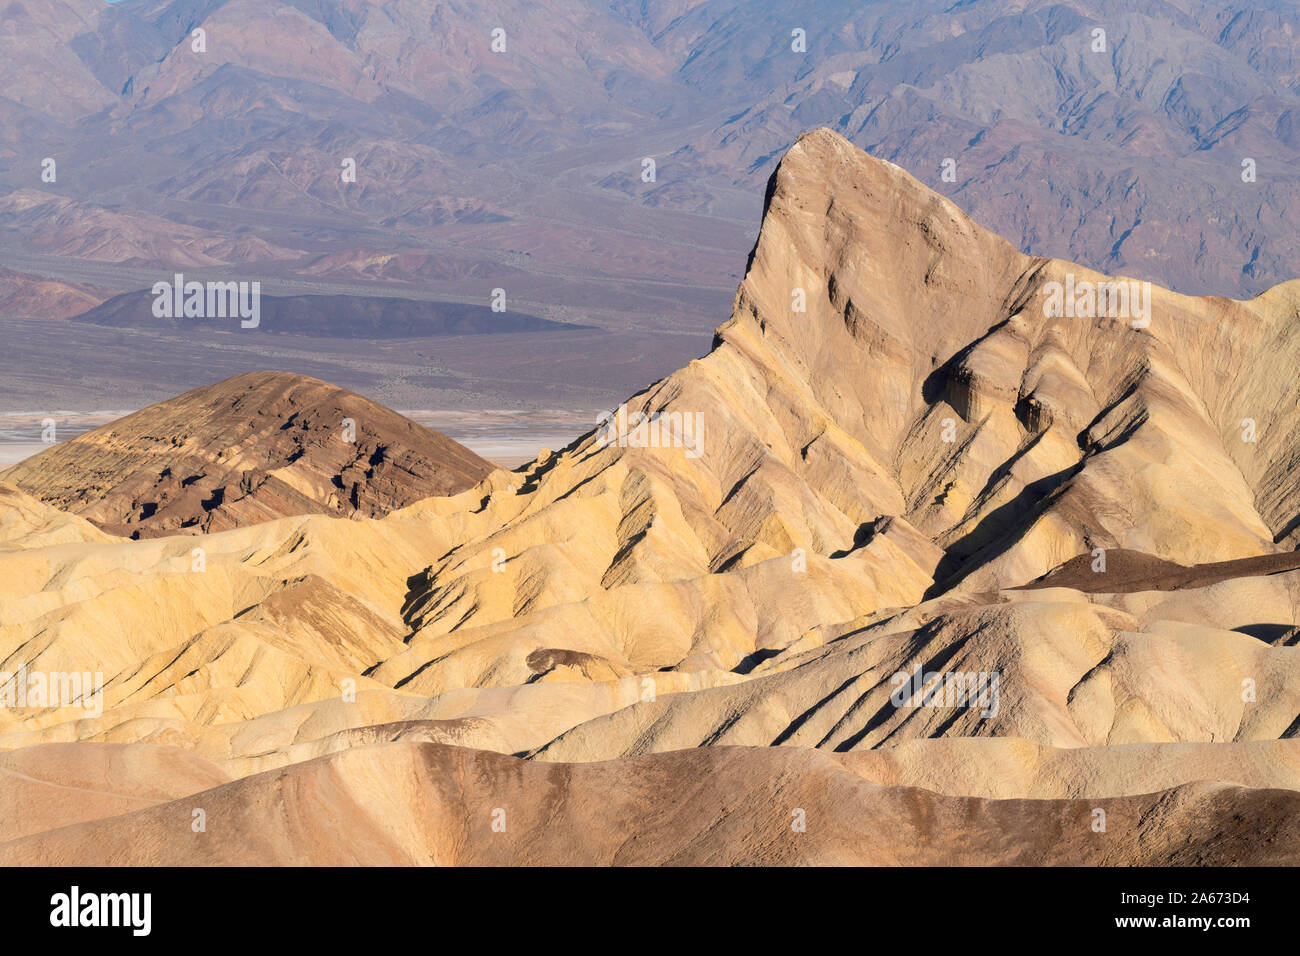 Zabriskie Point, Death Valley National Park, California, USA Banque D'Images